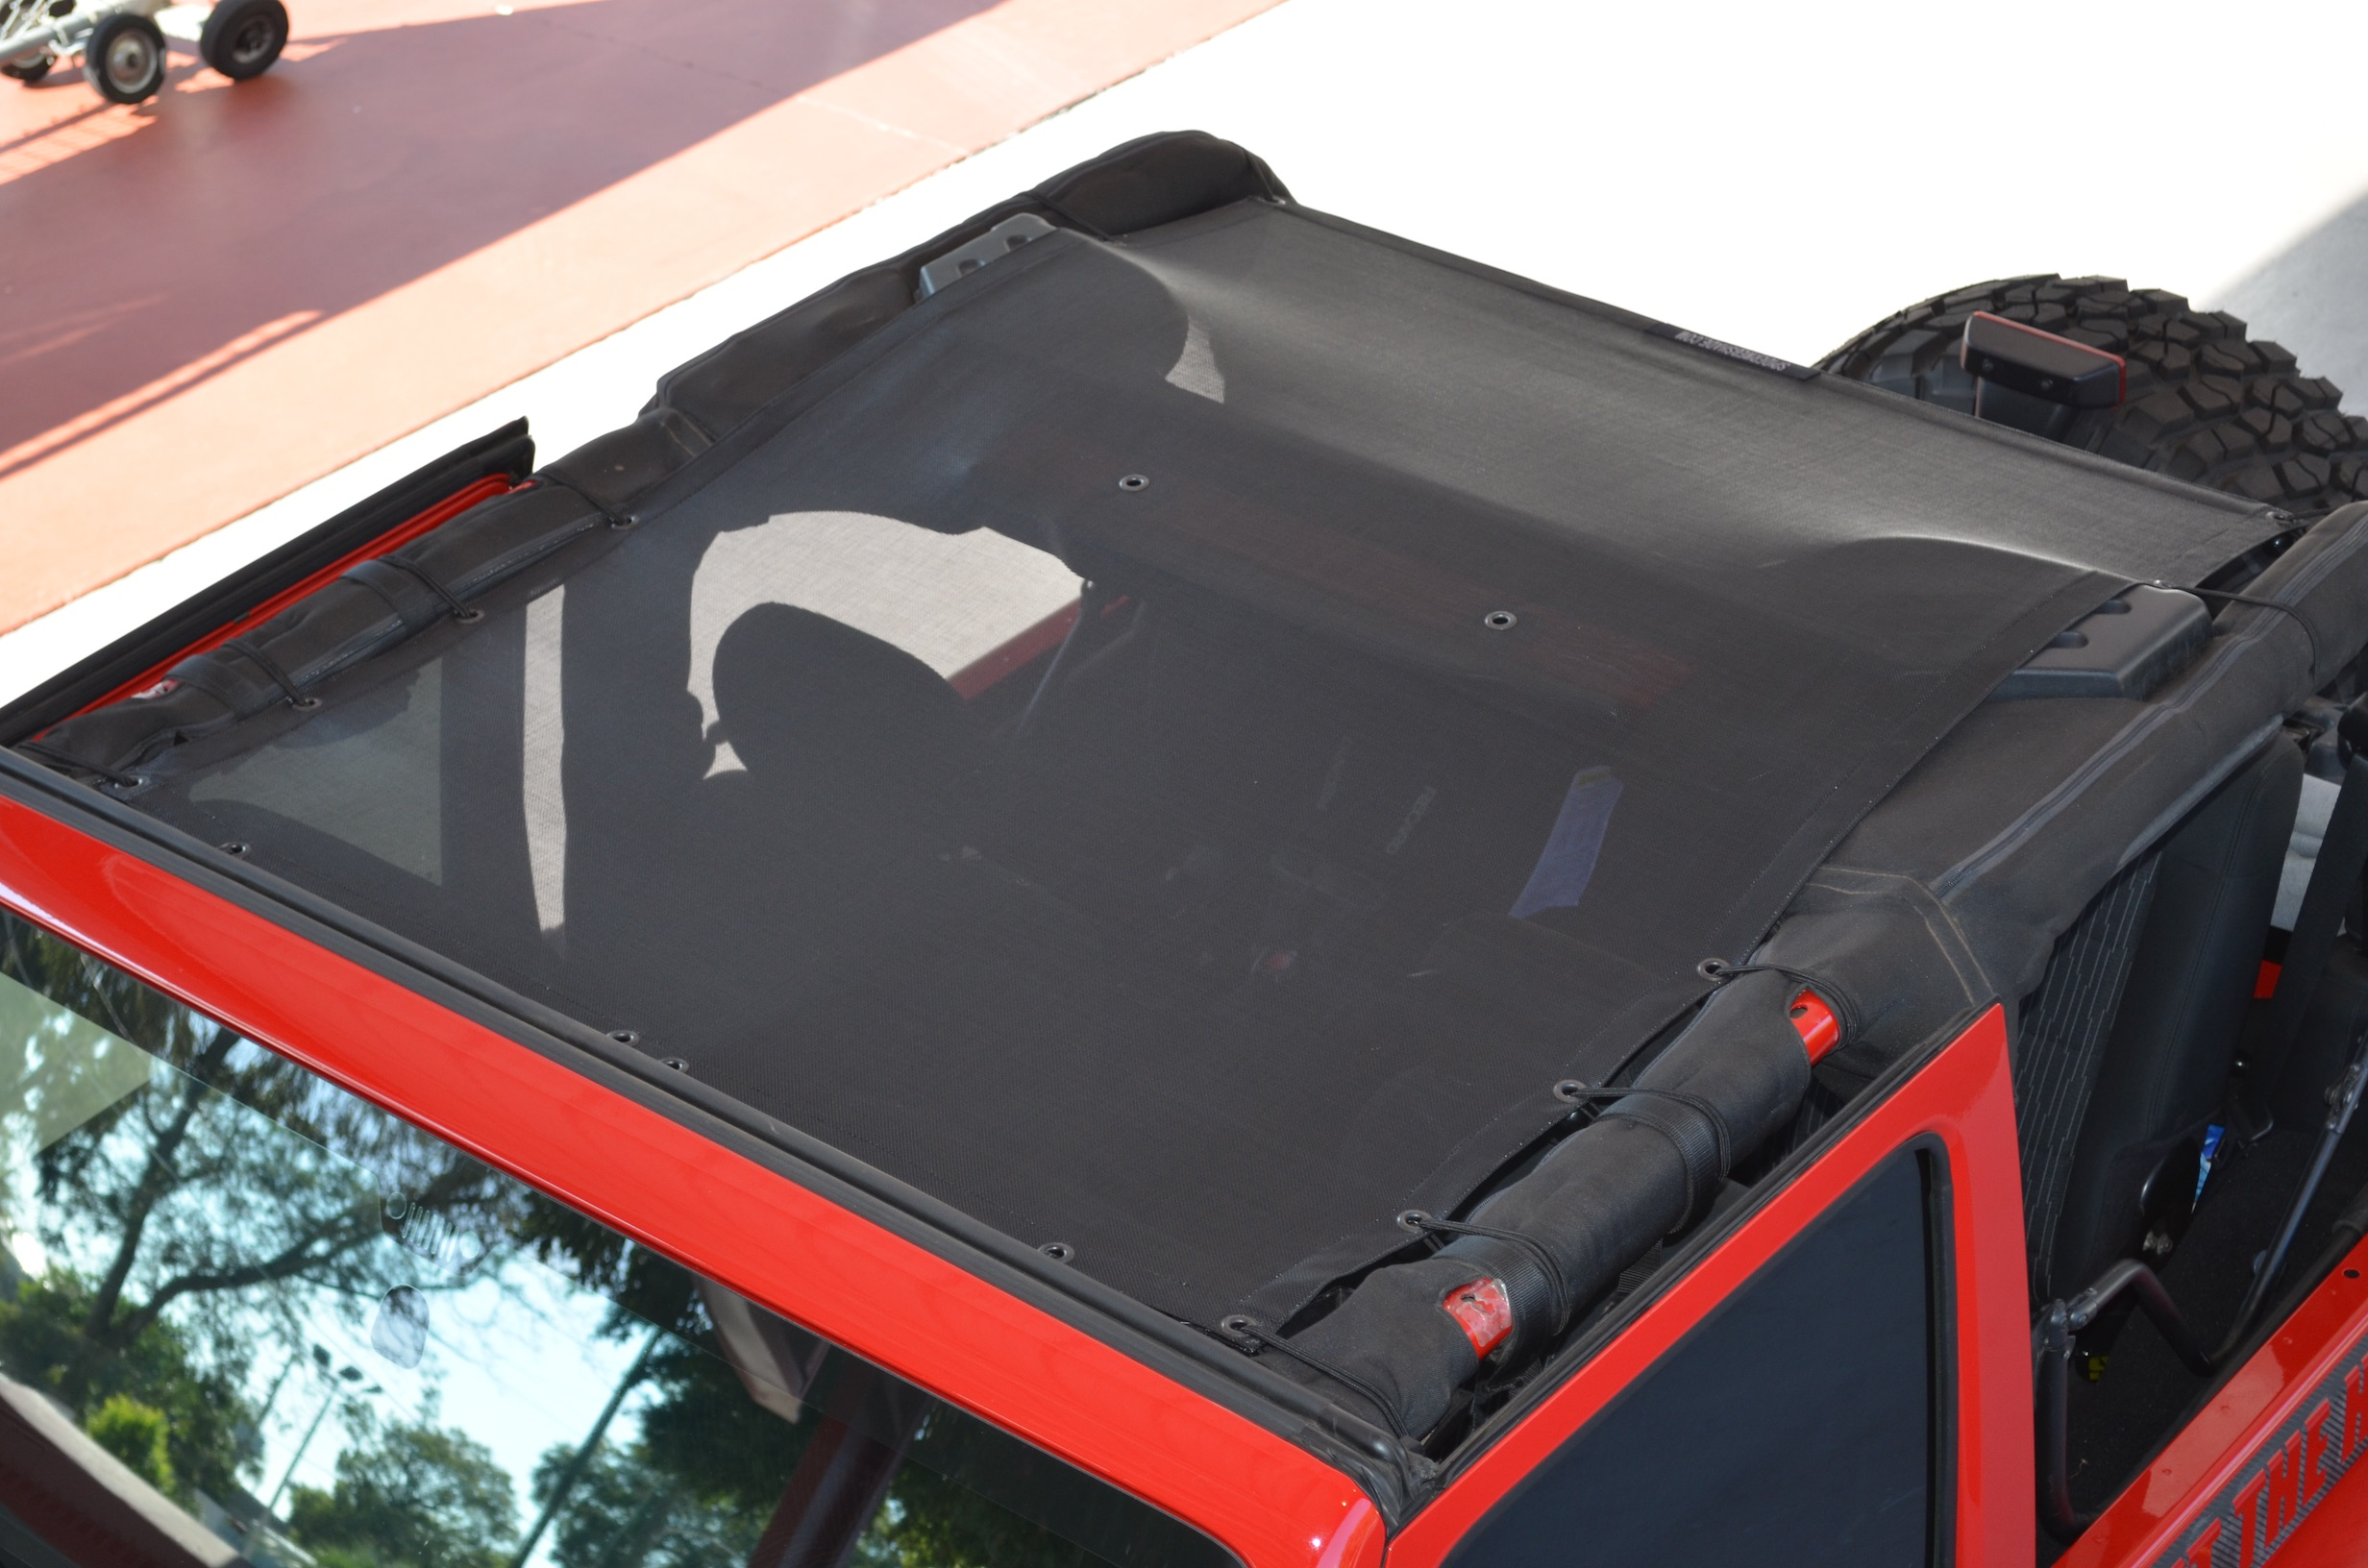 Spiderwebshade Jeep Wrangler Mesh Shade Top Sunshade Uv Protection Pyle Plam40 4gauge Amplifier Installation Kit Walmartcom Accessory Usa Made With 5 Year Warranty For Your Jk 2 Door 2007 2017